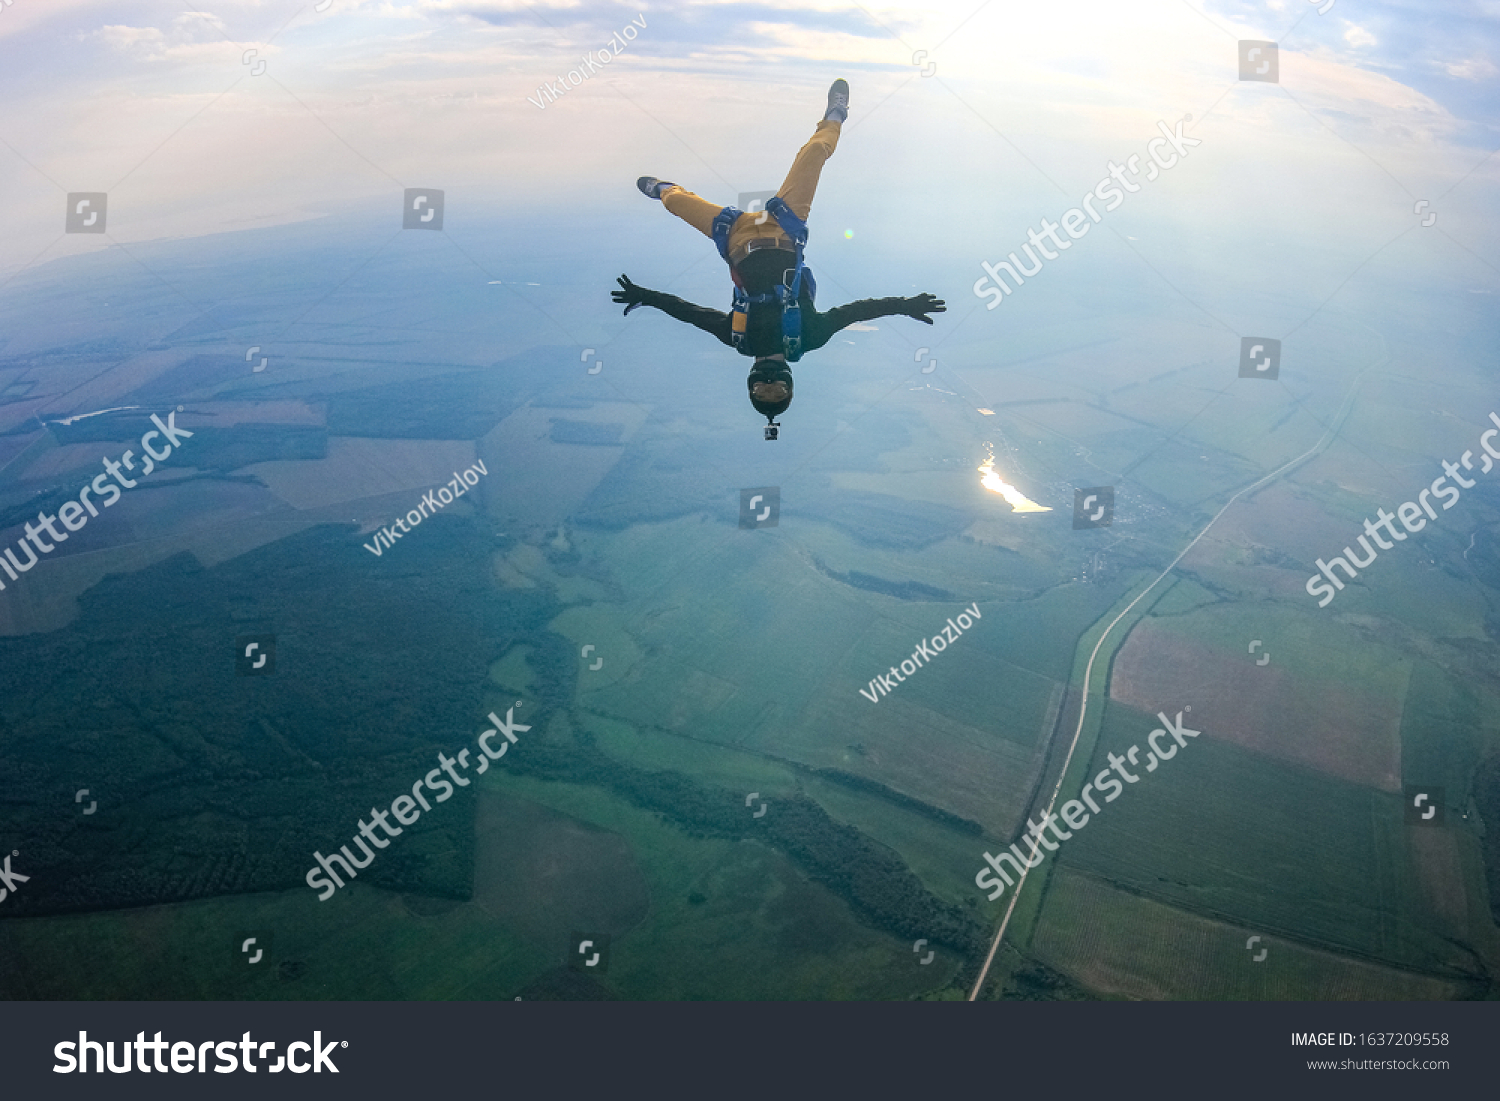 Hobbies tourism man. Free people above earth prefere active sports marketing. Bird men conquers sky. Flying people in professional suit above earth. Extreme tourism as a hobby. #1637209558